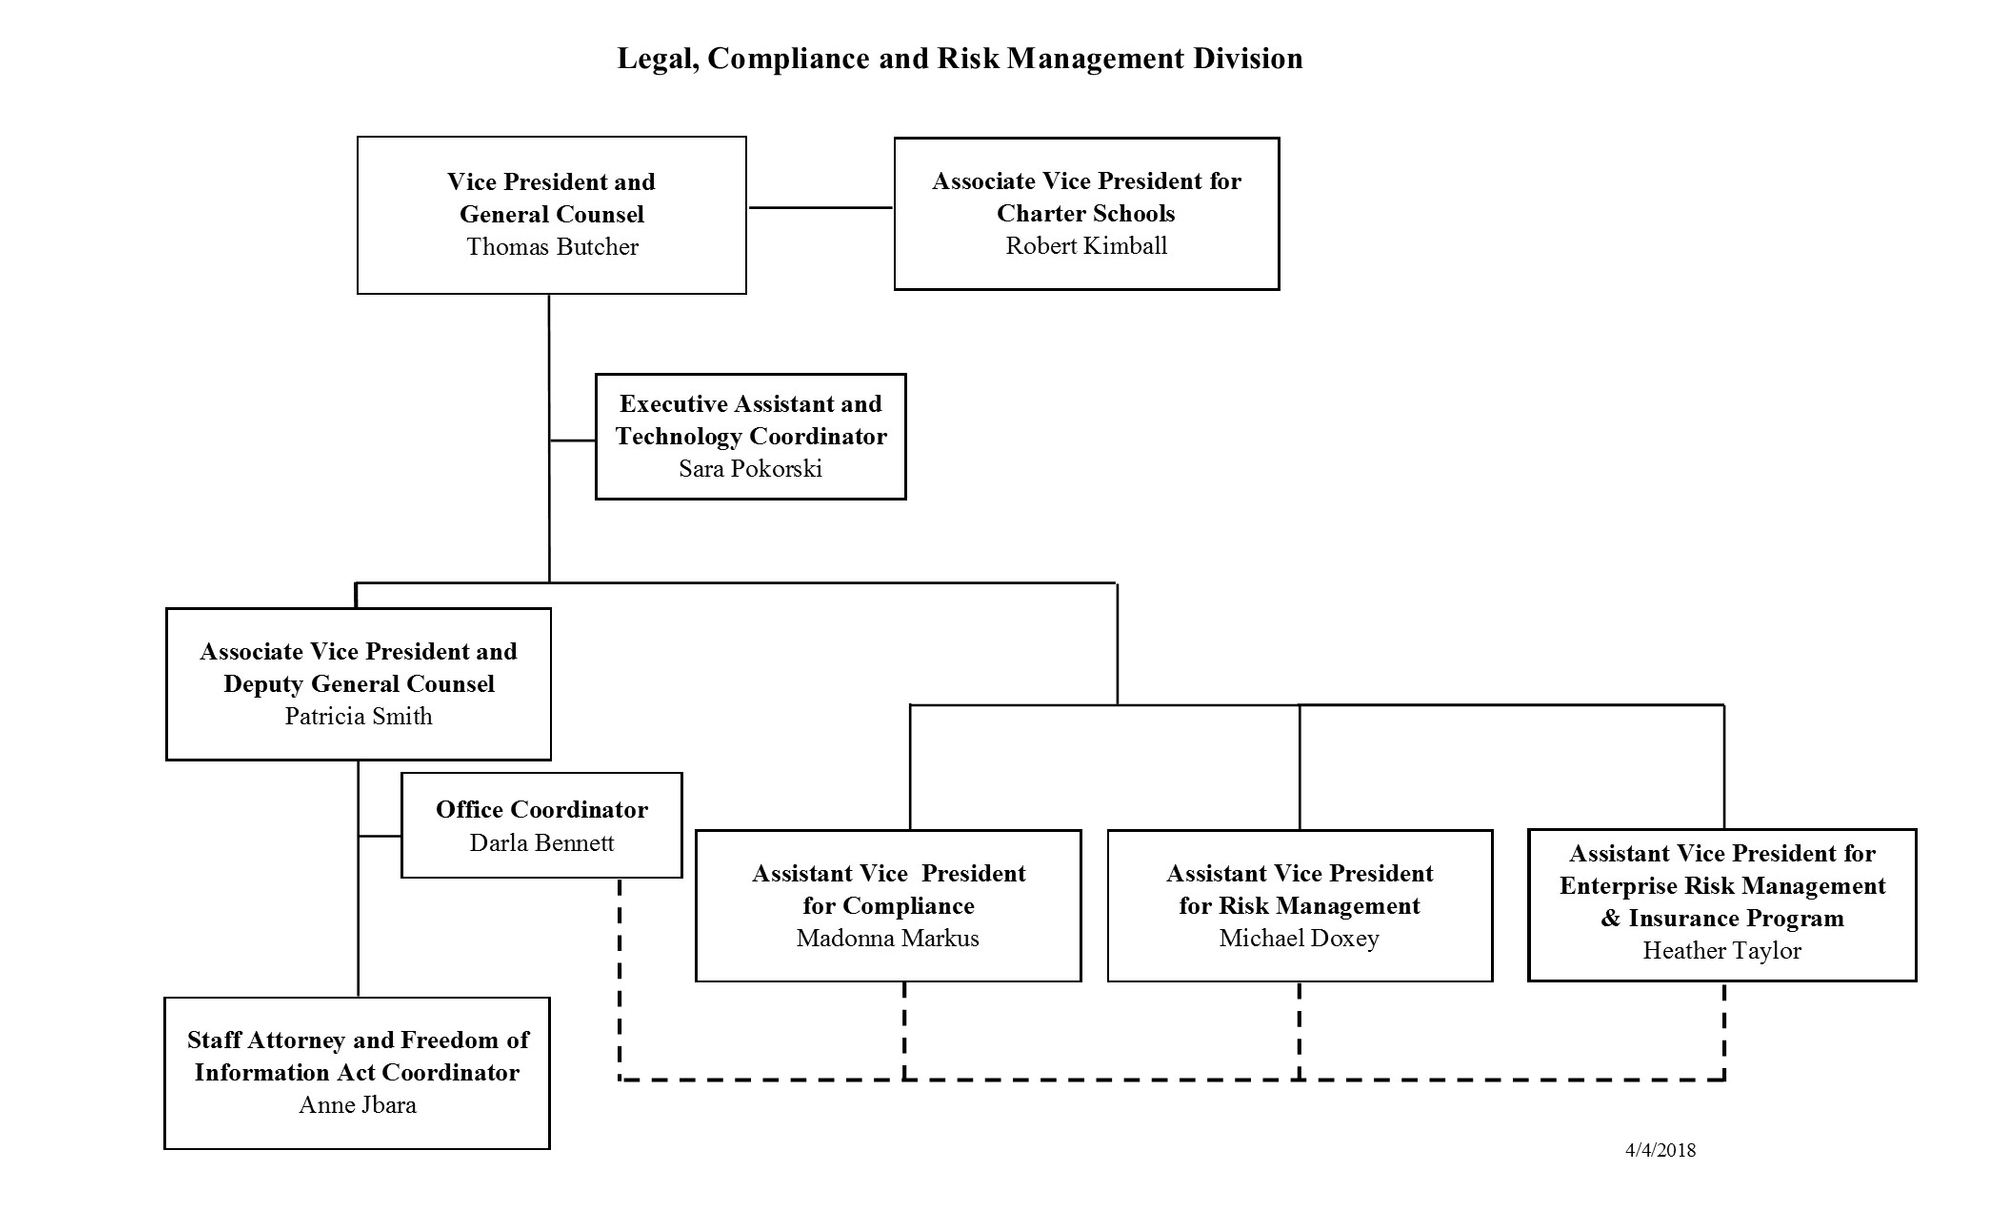 Legal  Compliance And Risk Management Organizational Chart